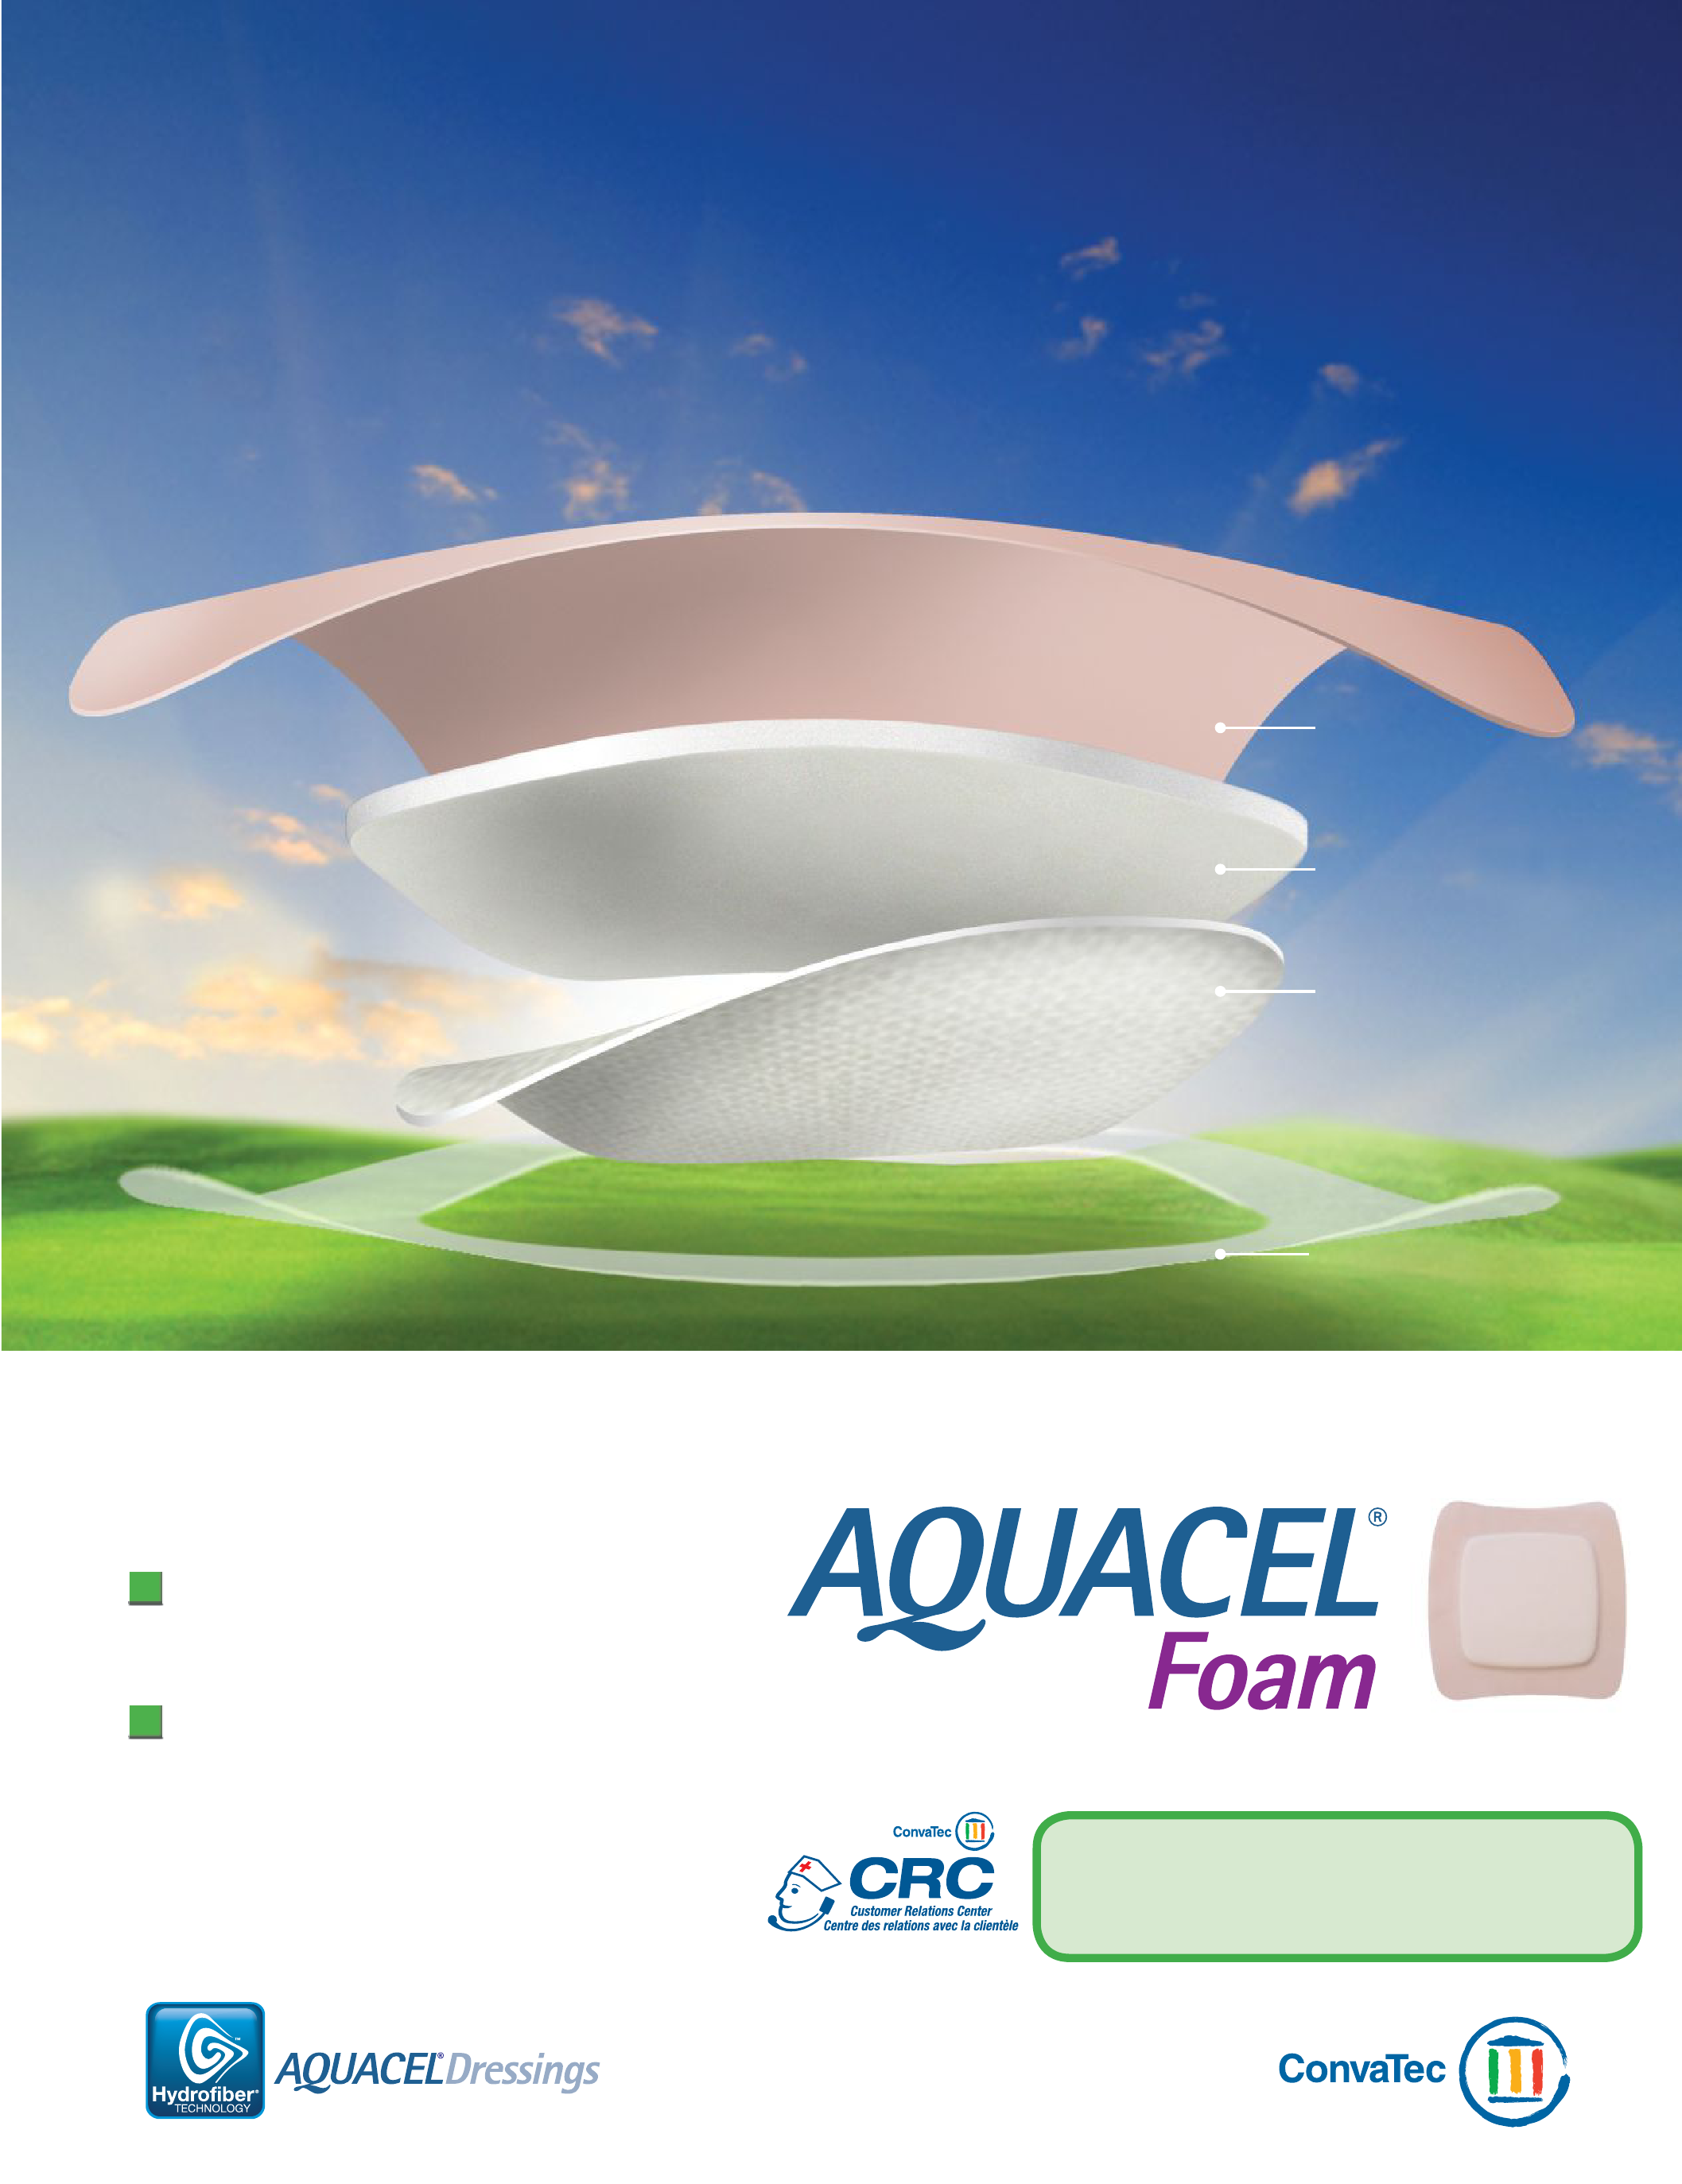 Everything you love about foam dressings and more Waterproof and Bacteria/ Viral Barrier top layer Soft Absorbent FOAM pad AQUACEL interface Gentle silicone adhesive border Now onl onlyy one dr